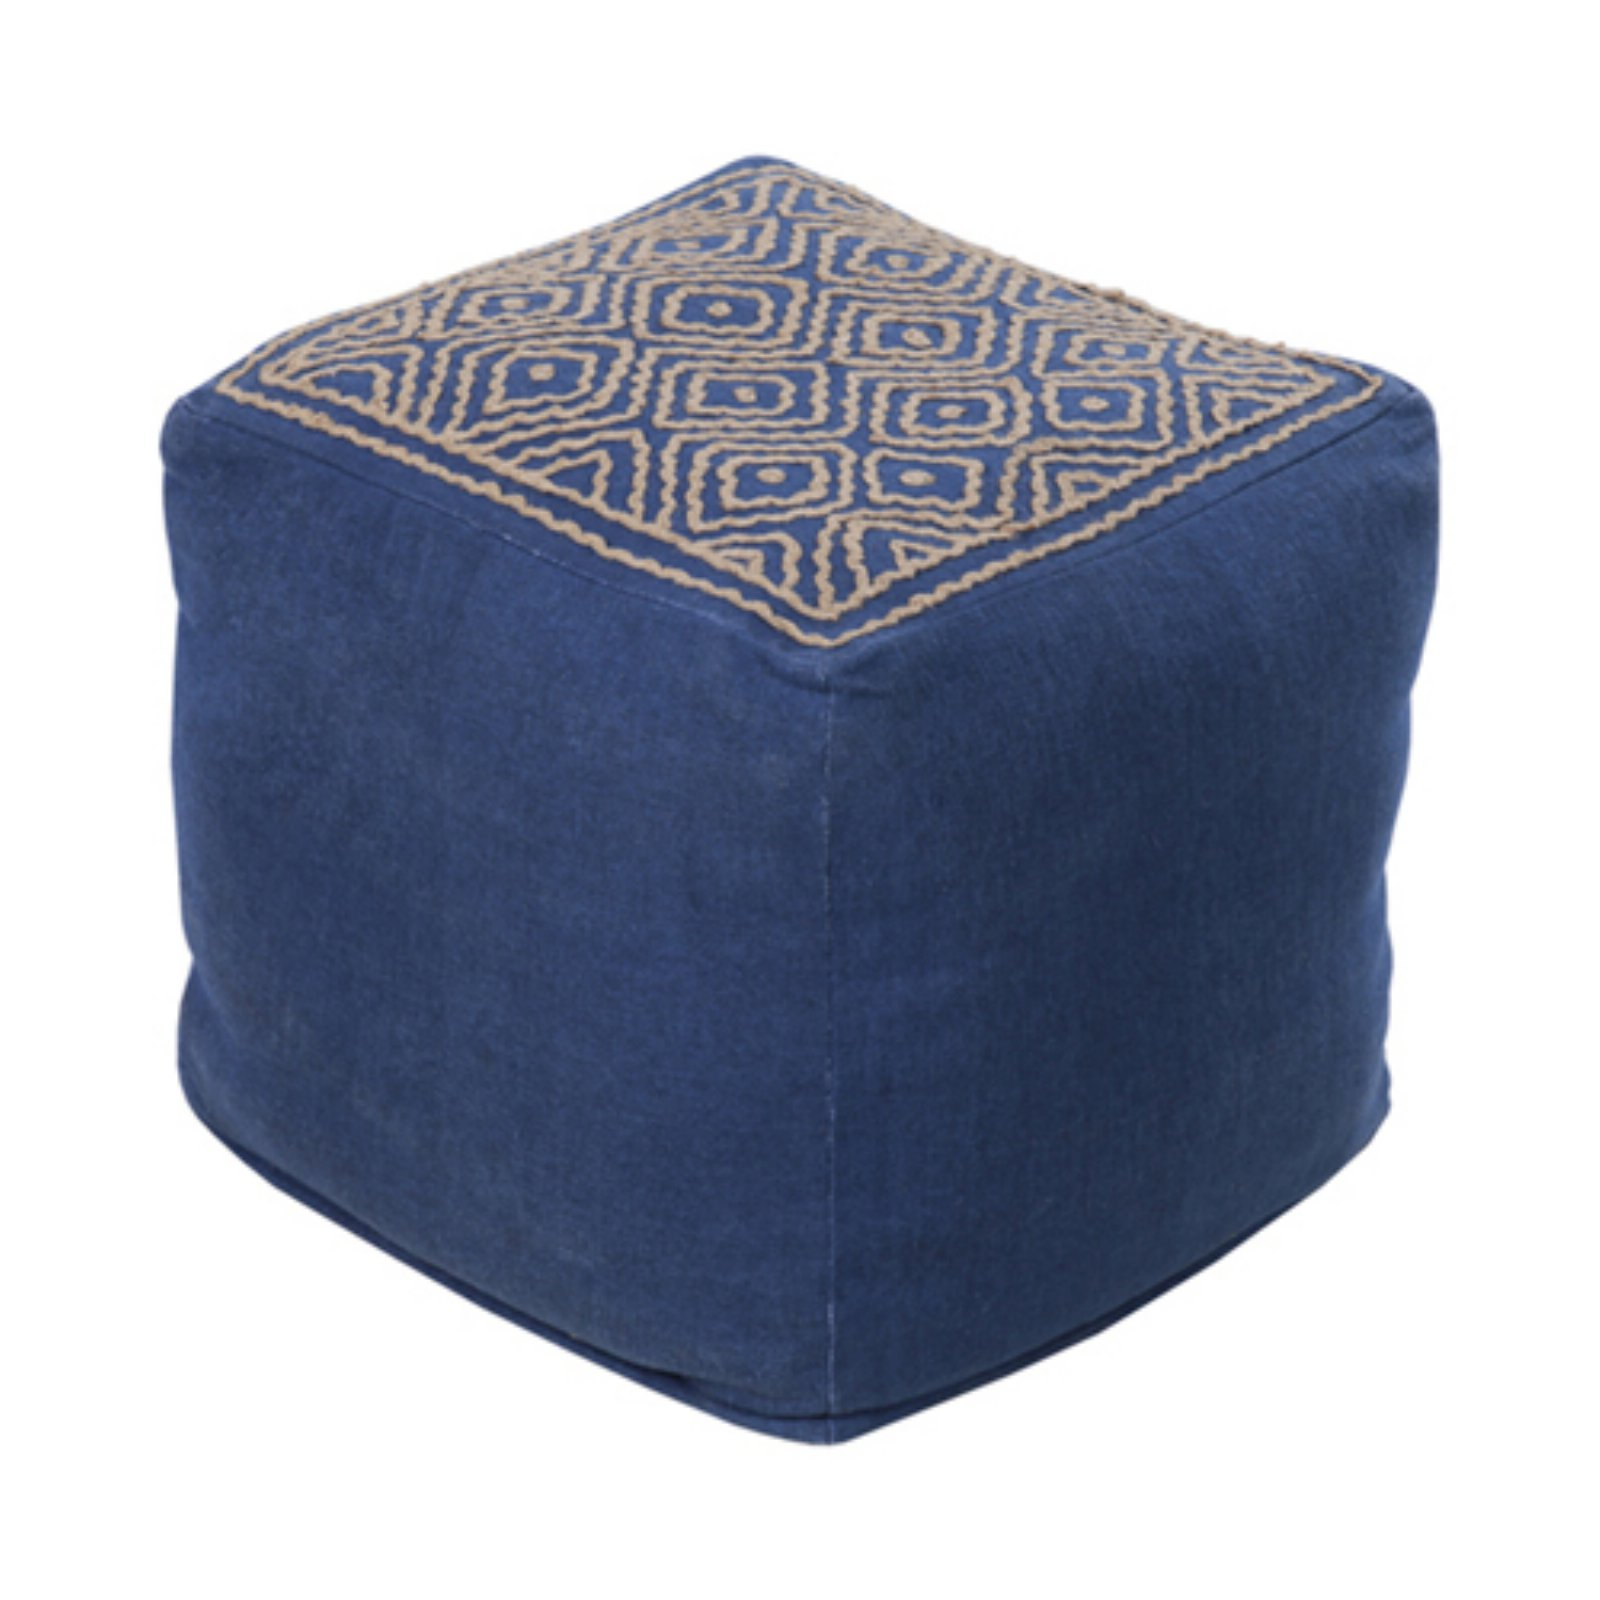 Surya 18 in. Cube Linen Pouf by Surya